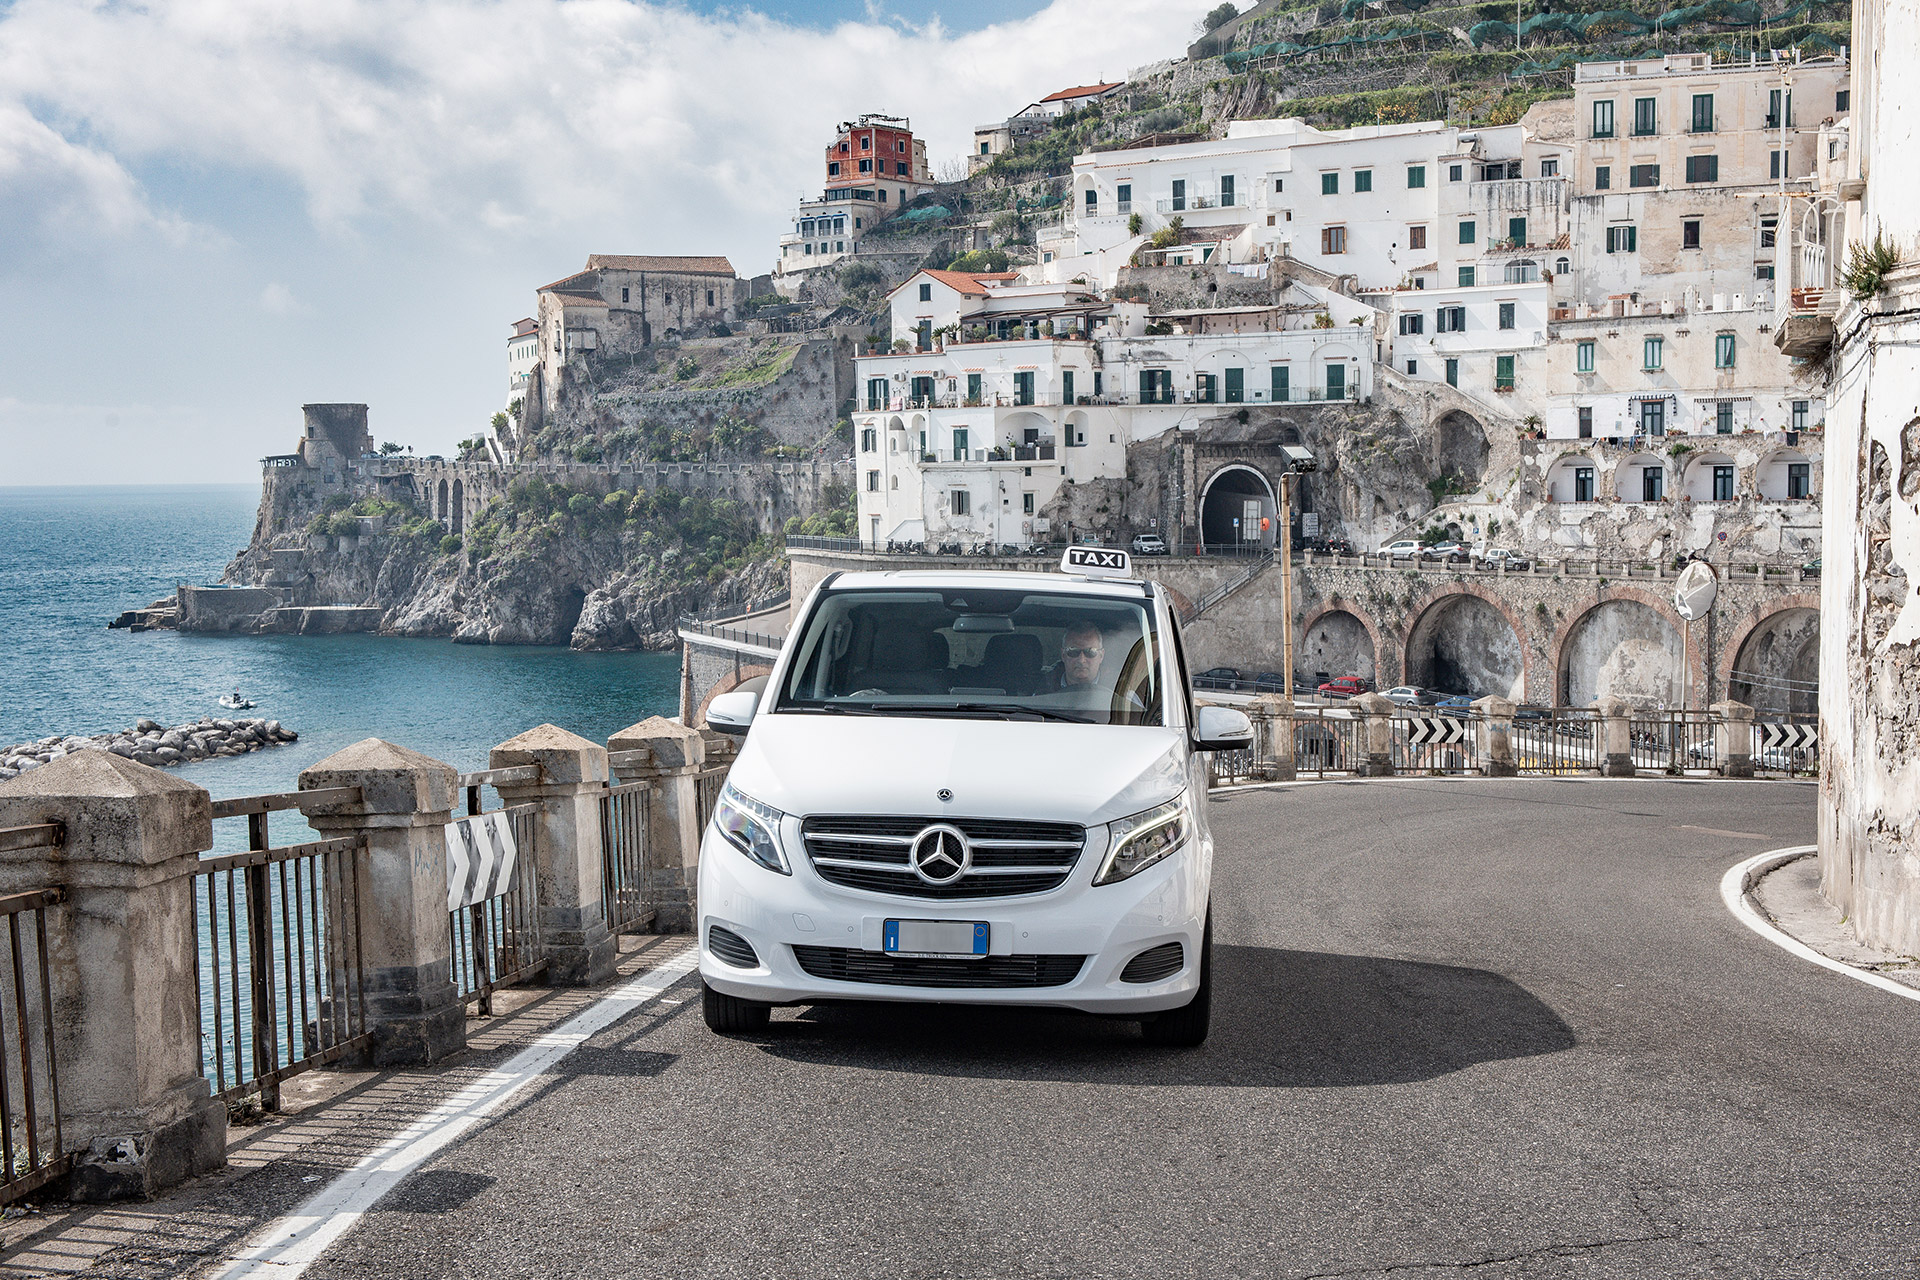 Ravello Taxi - Shuttle Services